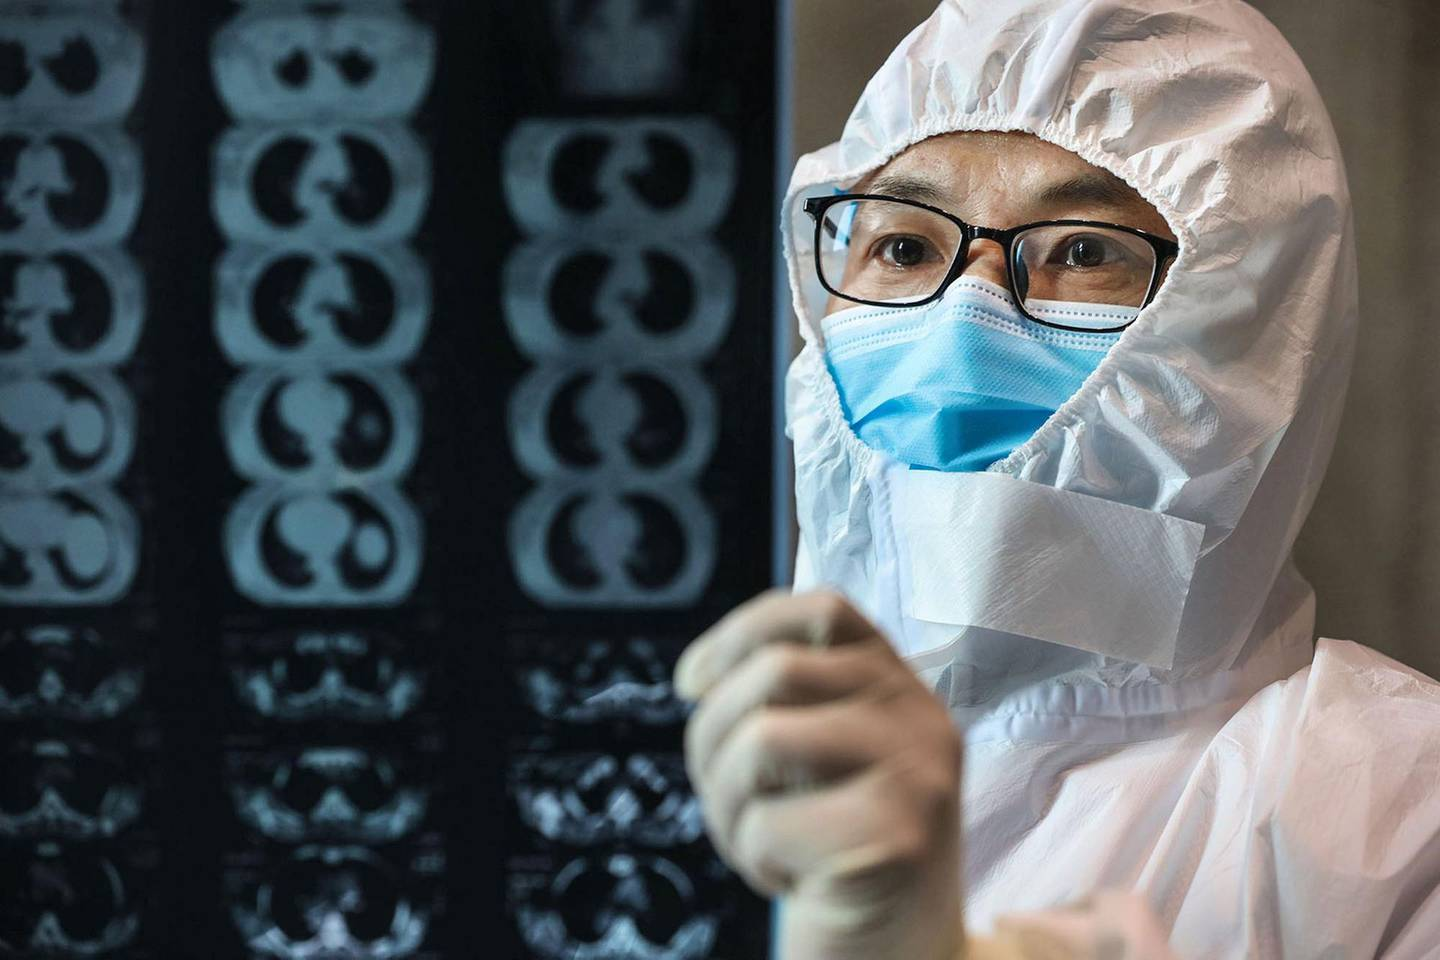 This photo taken on February 20, 2020 shows a doctor looking at a lung CT image at a hospital in Yunmeng county, Xiaogan city, in China's central Hubei province. China on February 21 touted a big drop in new cases of the coronavirus as a sign it has contained the epidemic, but fears grew abroad after two former passengers of a quarantined cruise ship died in Japan and a cluster of infections increased in South Korea. - China OUT  / AFP / STR